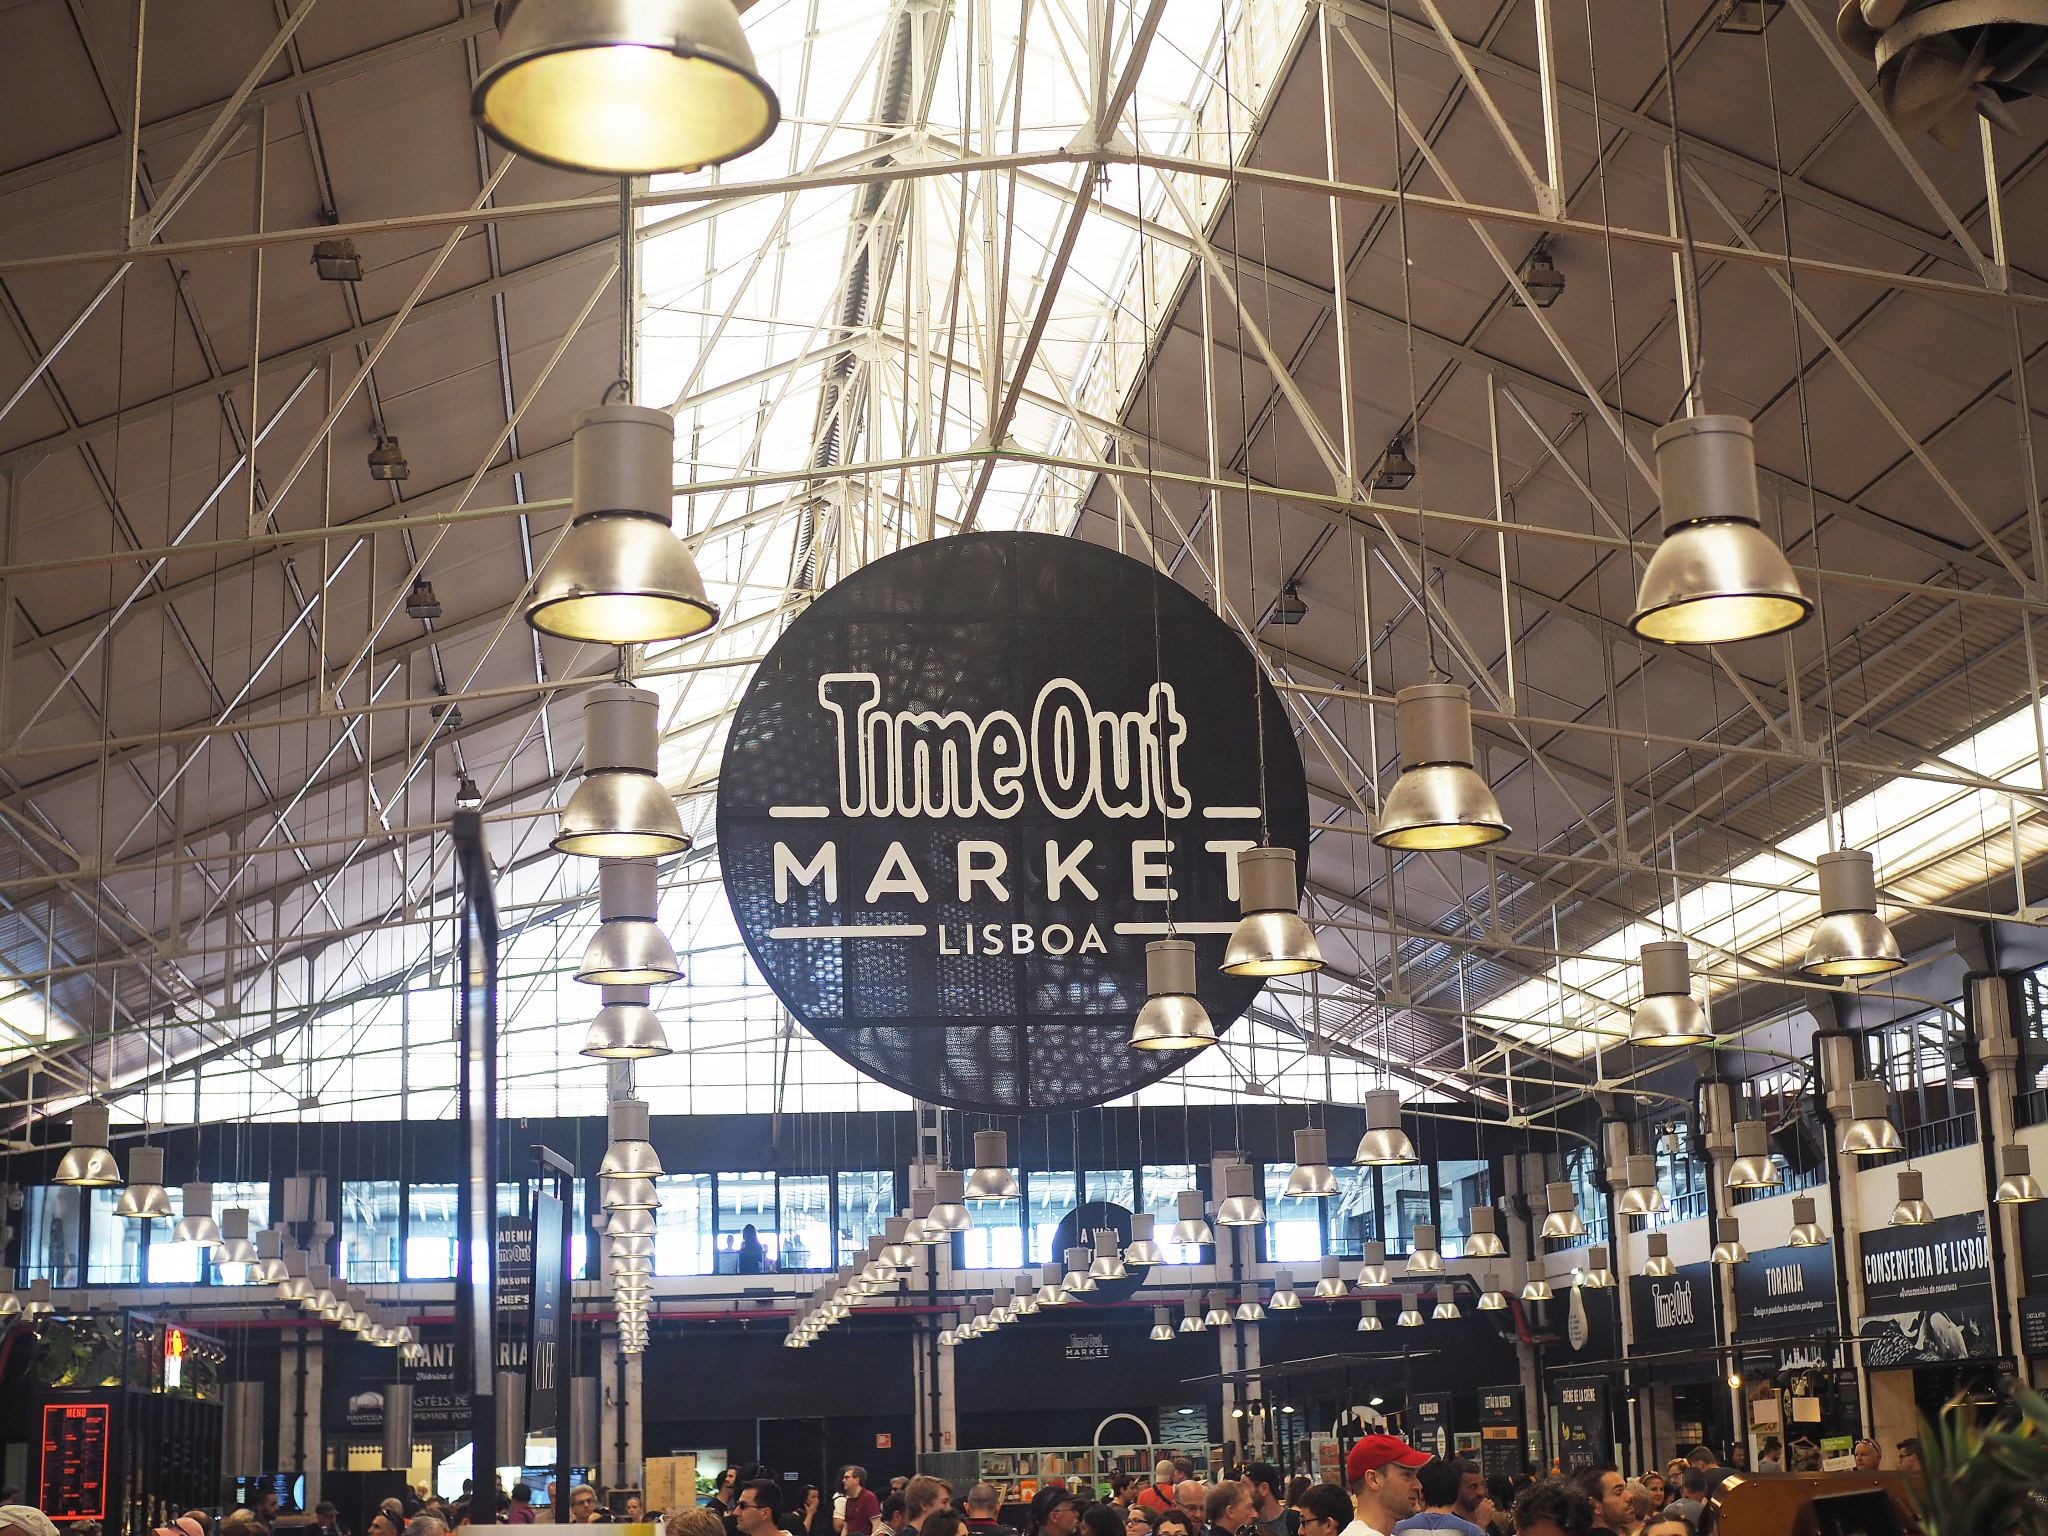 Time Out Market, Downtown Lisbon